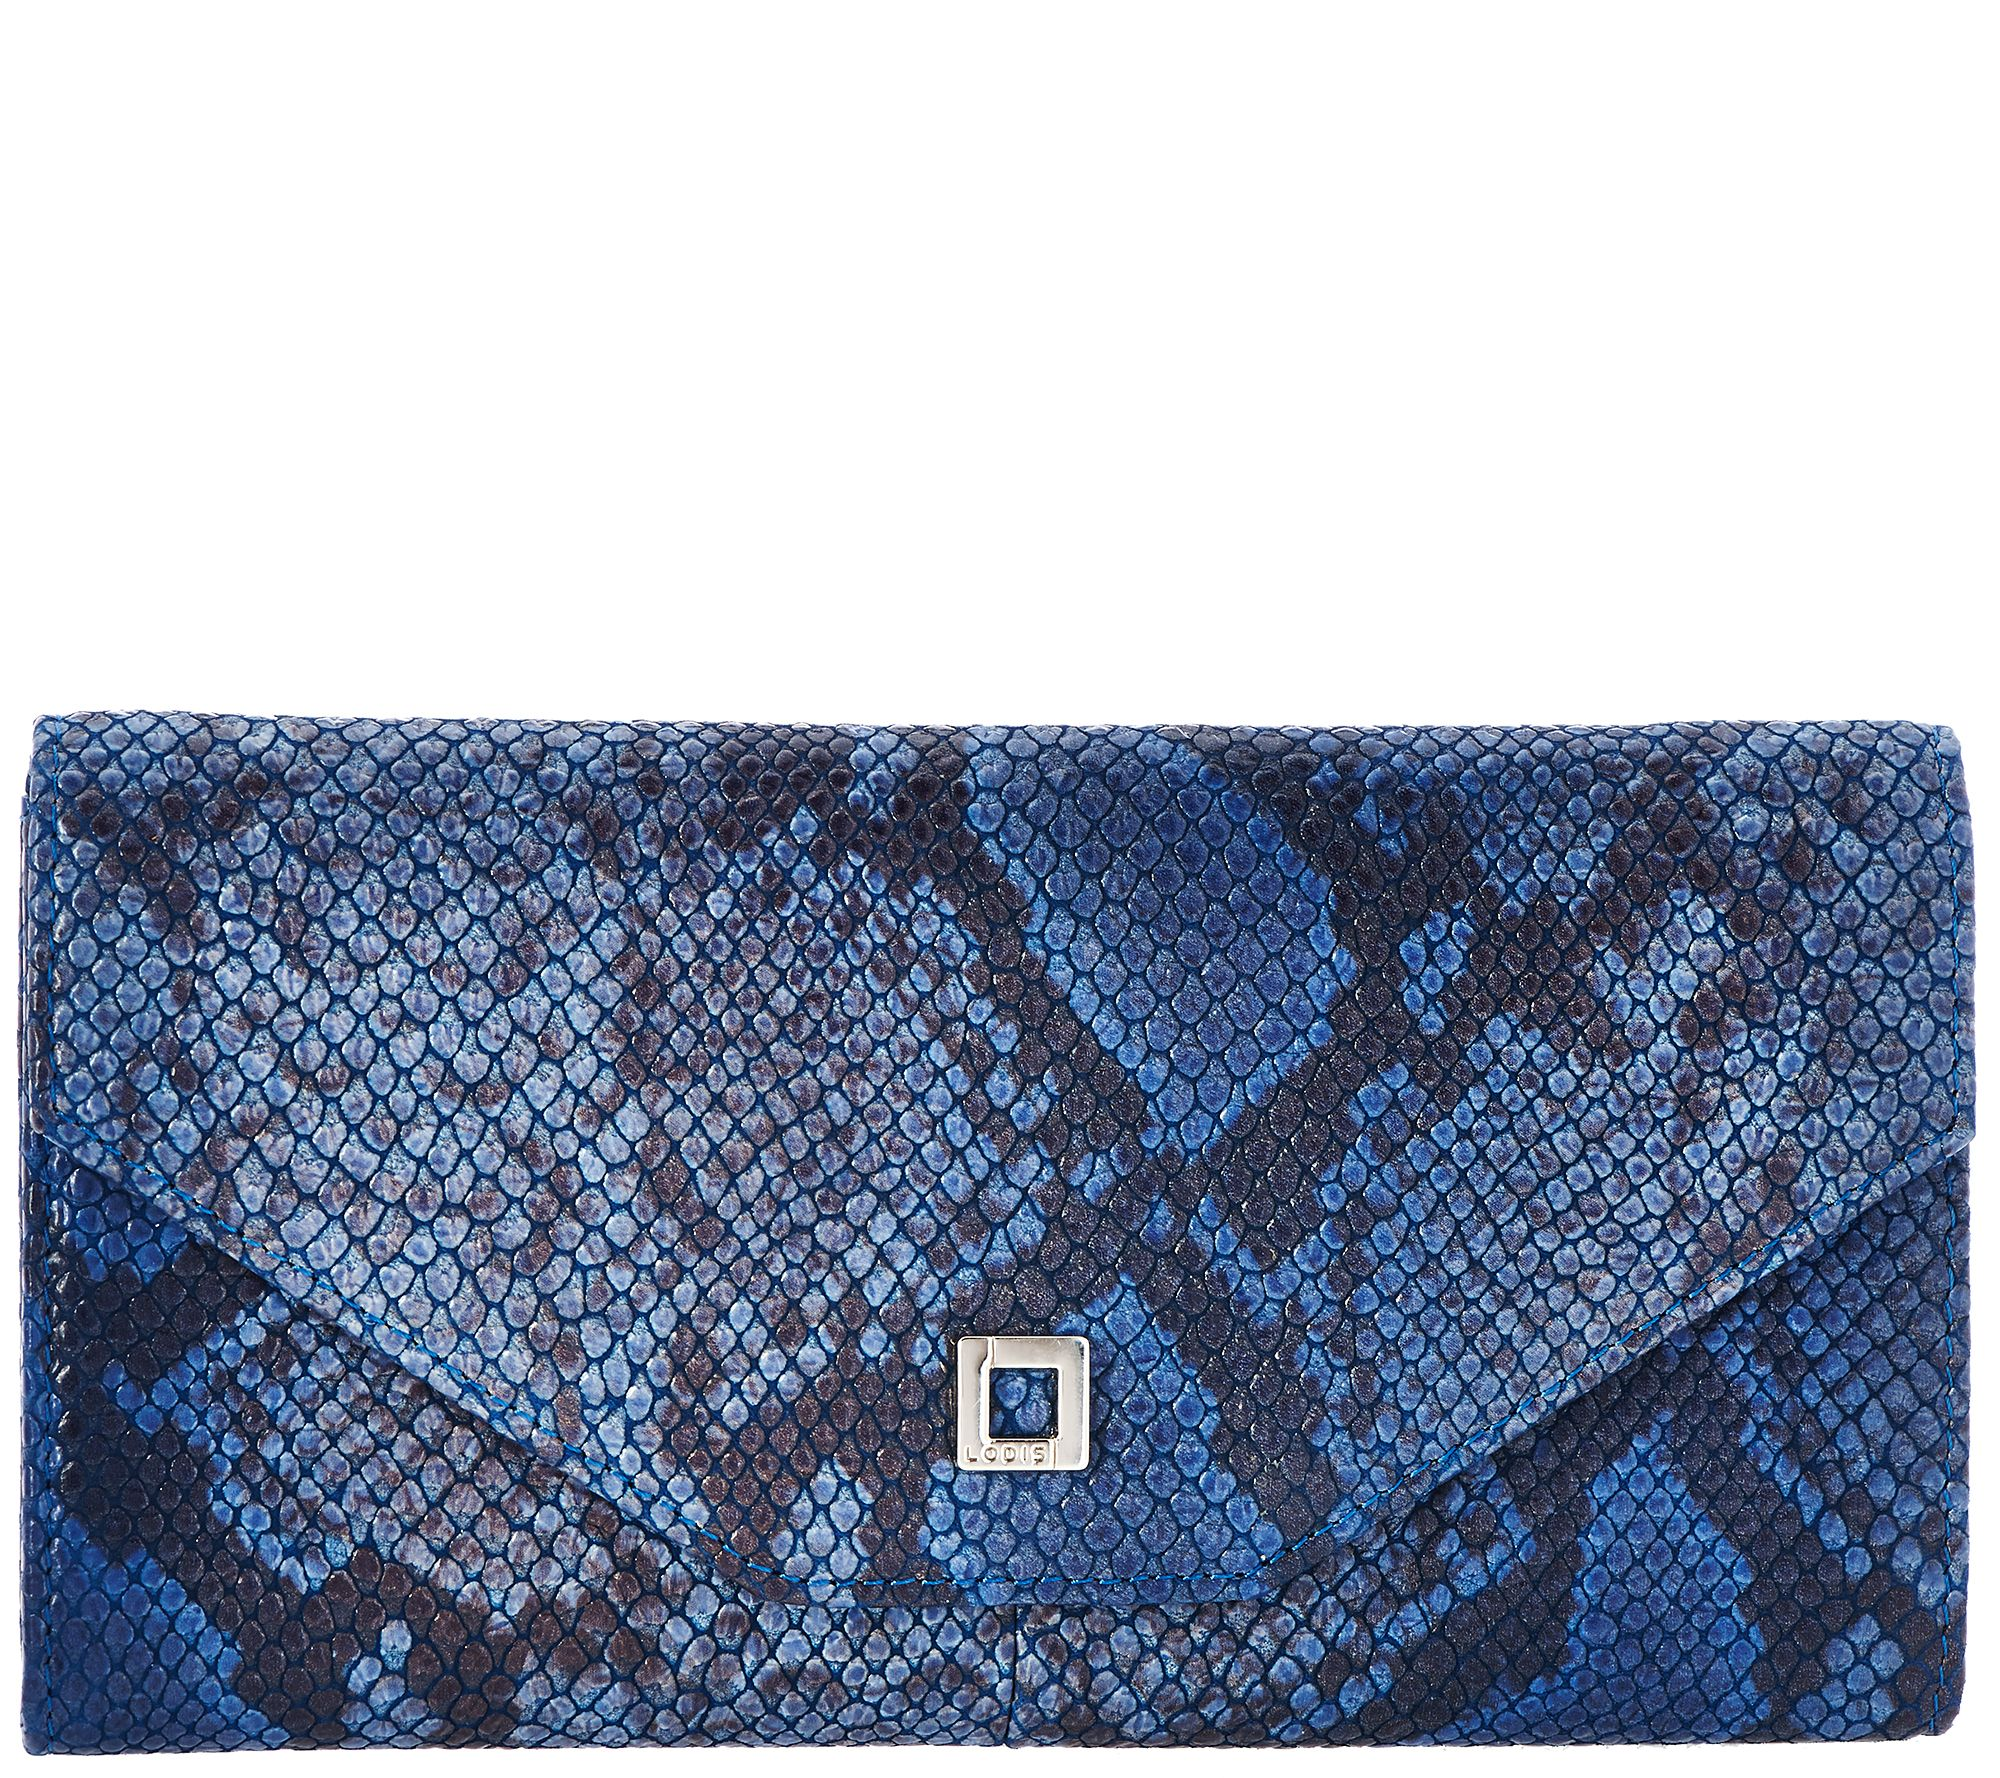 LODIS Italian Leather RFID Envelope Wallet - Alex - A277892 — QVC.com